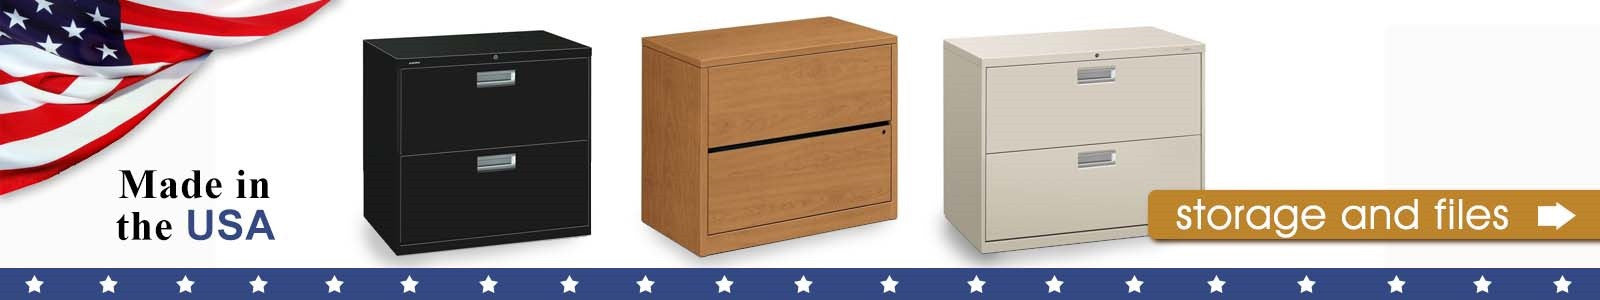 HON Storage & Filing Options Made in the USA